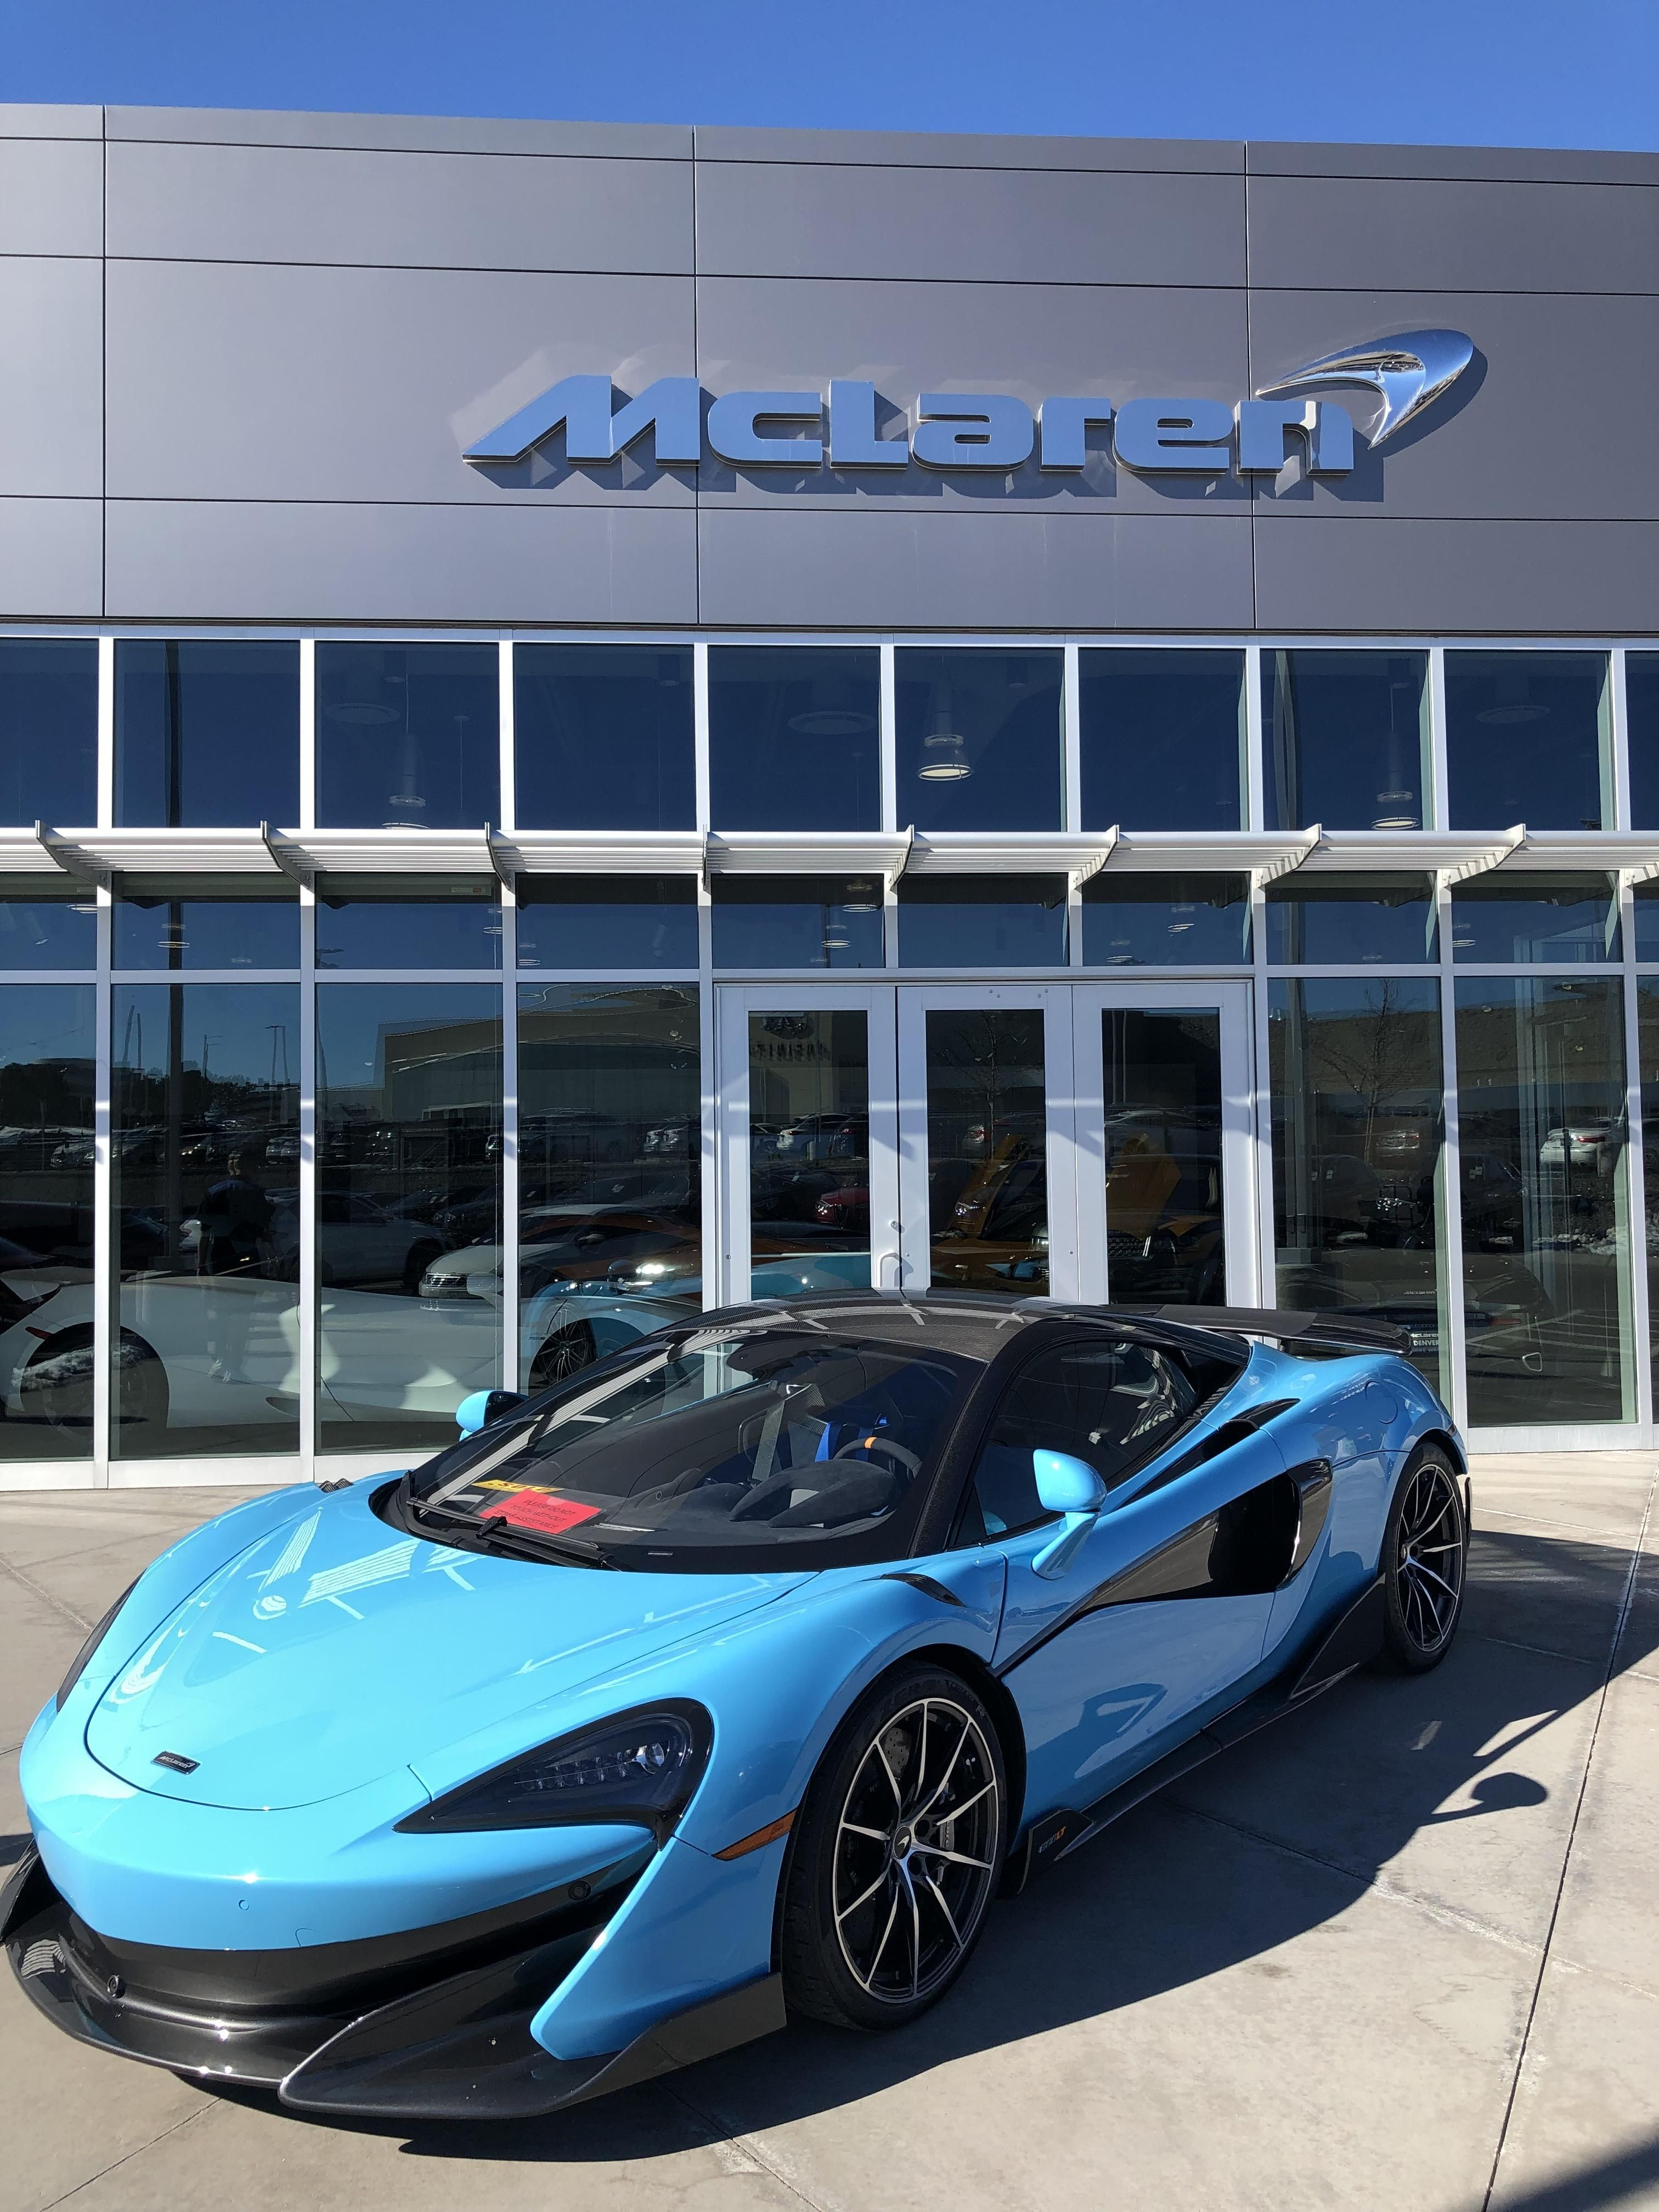 600lt In Curacao Blue At Mclaren Denver Posted By Imjustadudeguy Cars Motorcycles